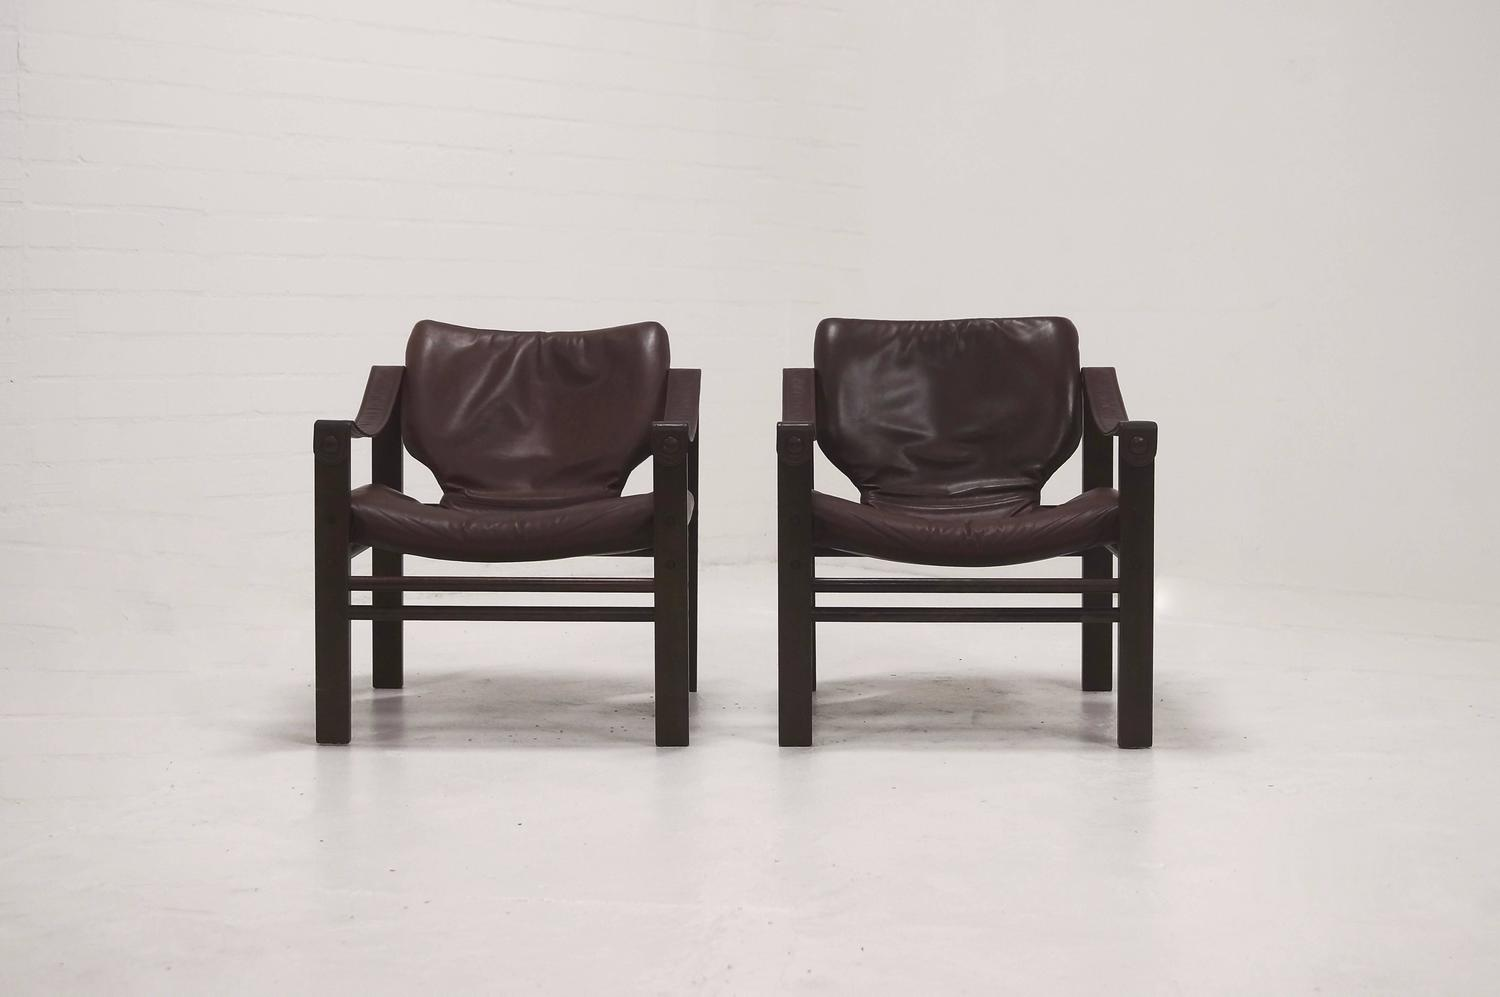 Pair Of Safari Chair Lounge Chairs By Maurice Burke For